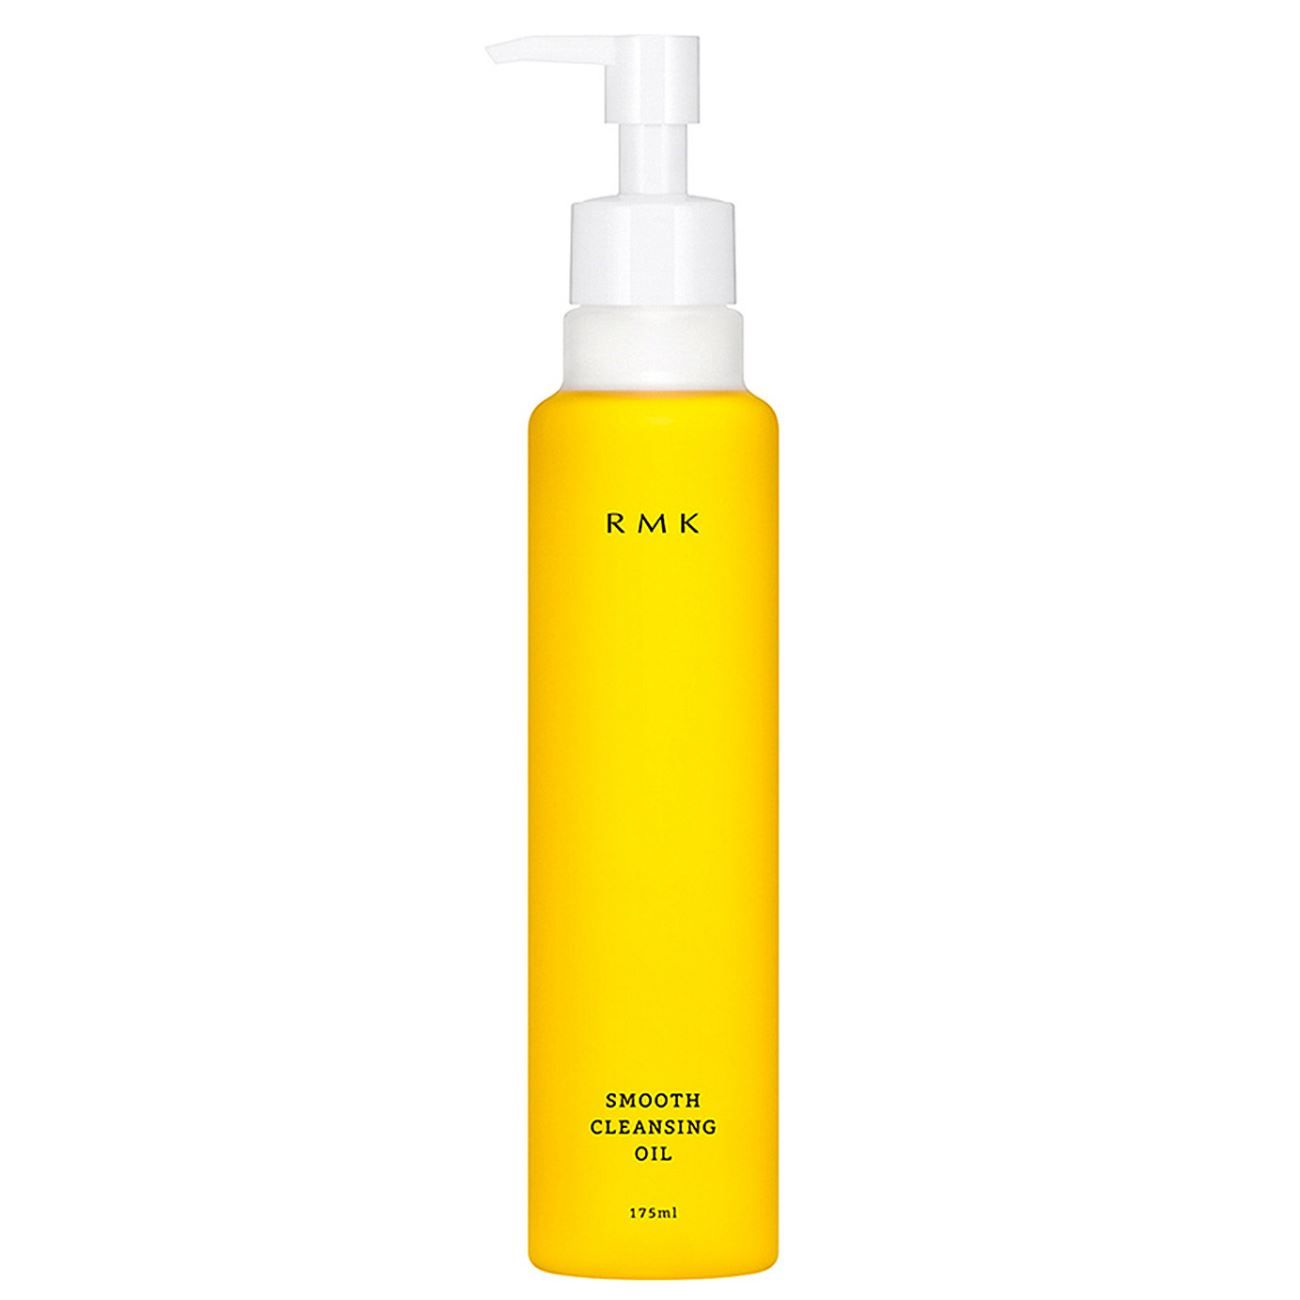 Smooth Cleansing Oil